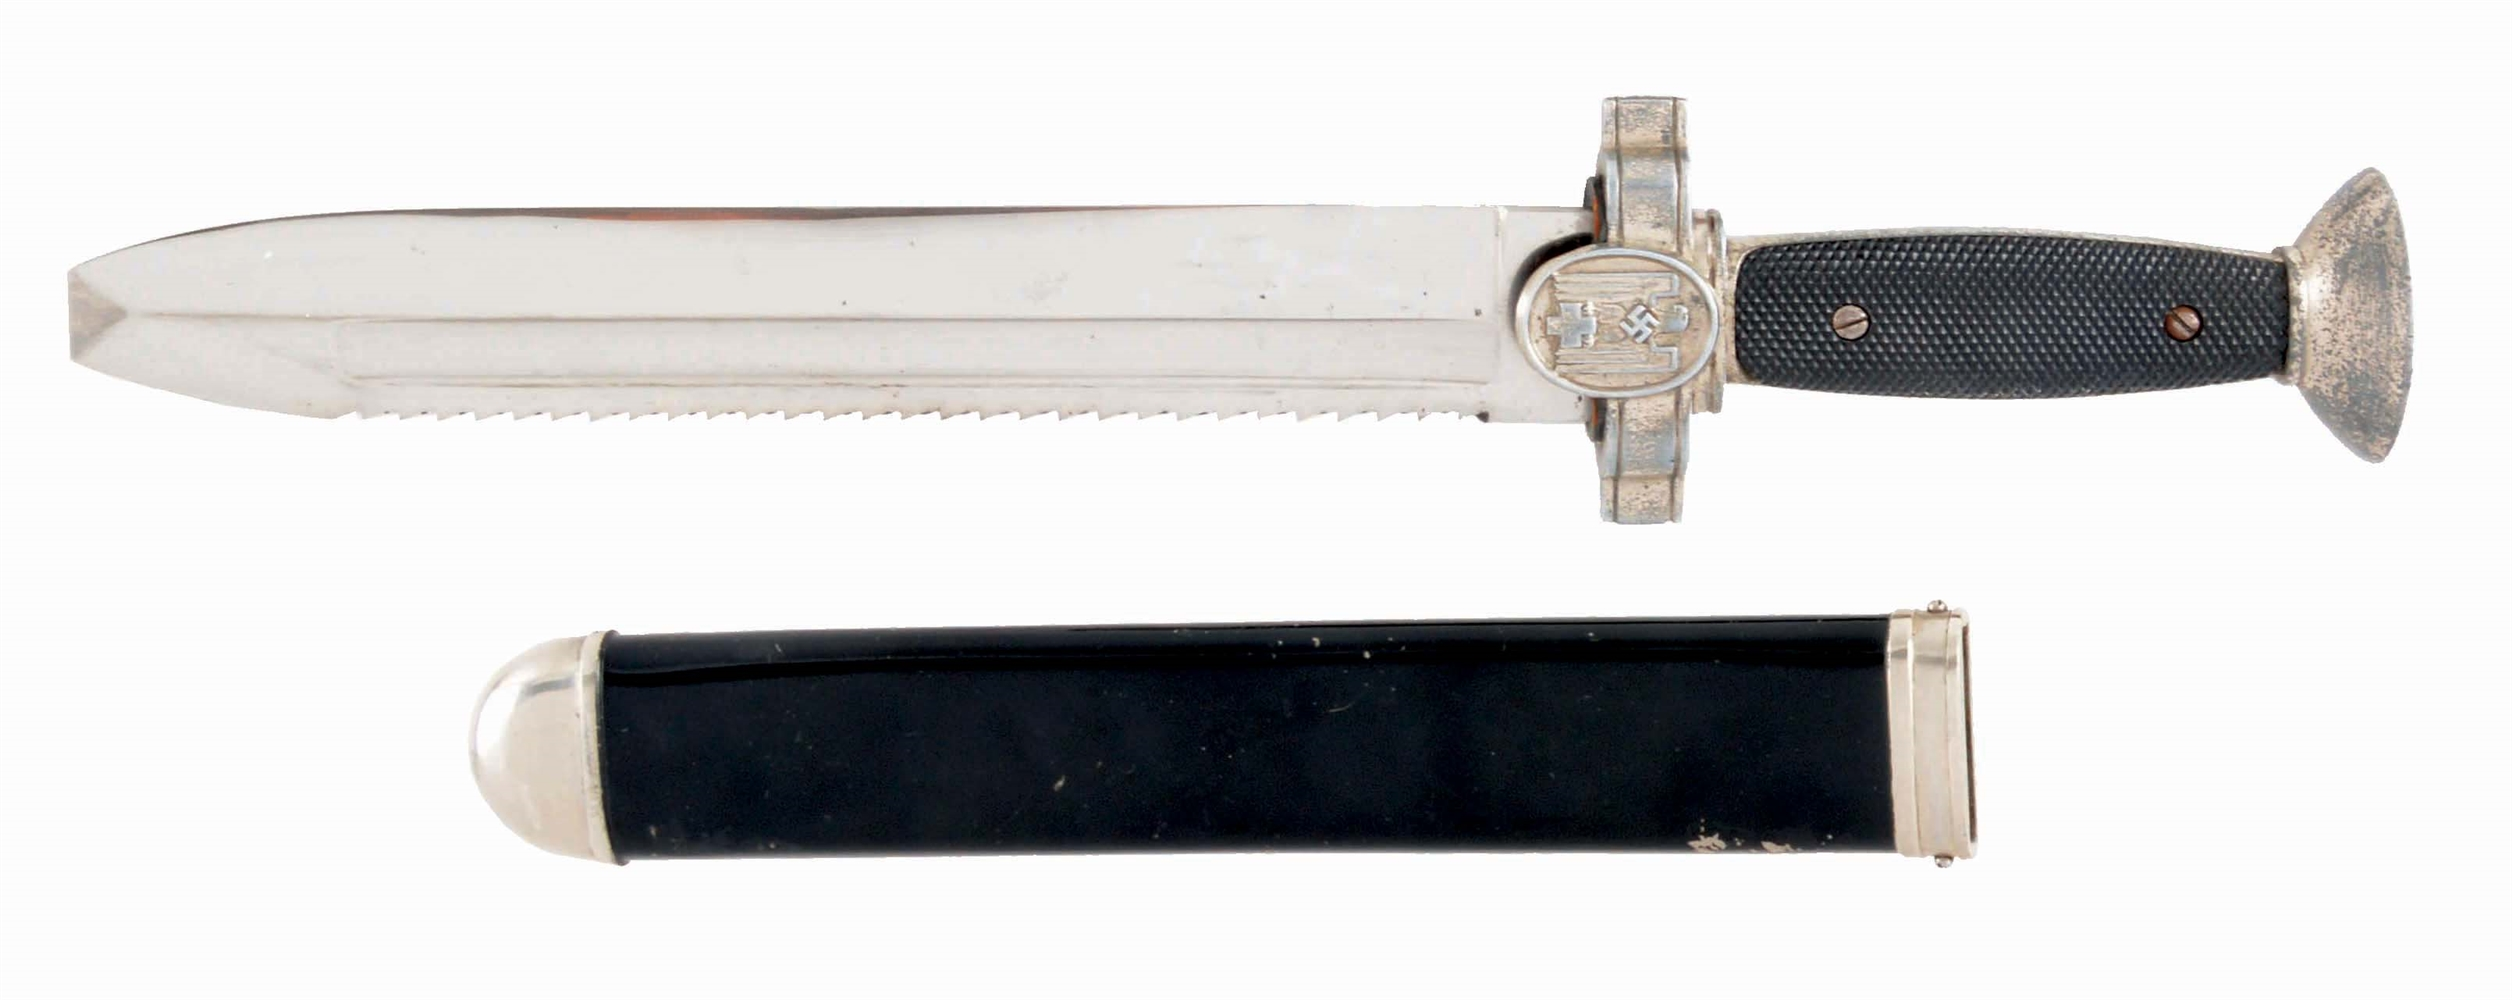 THIRD REICH RED CROSS HEWER DAGGER